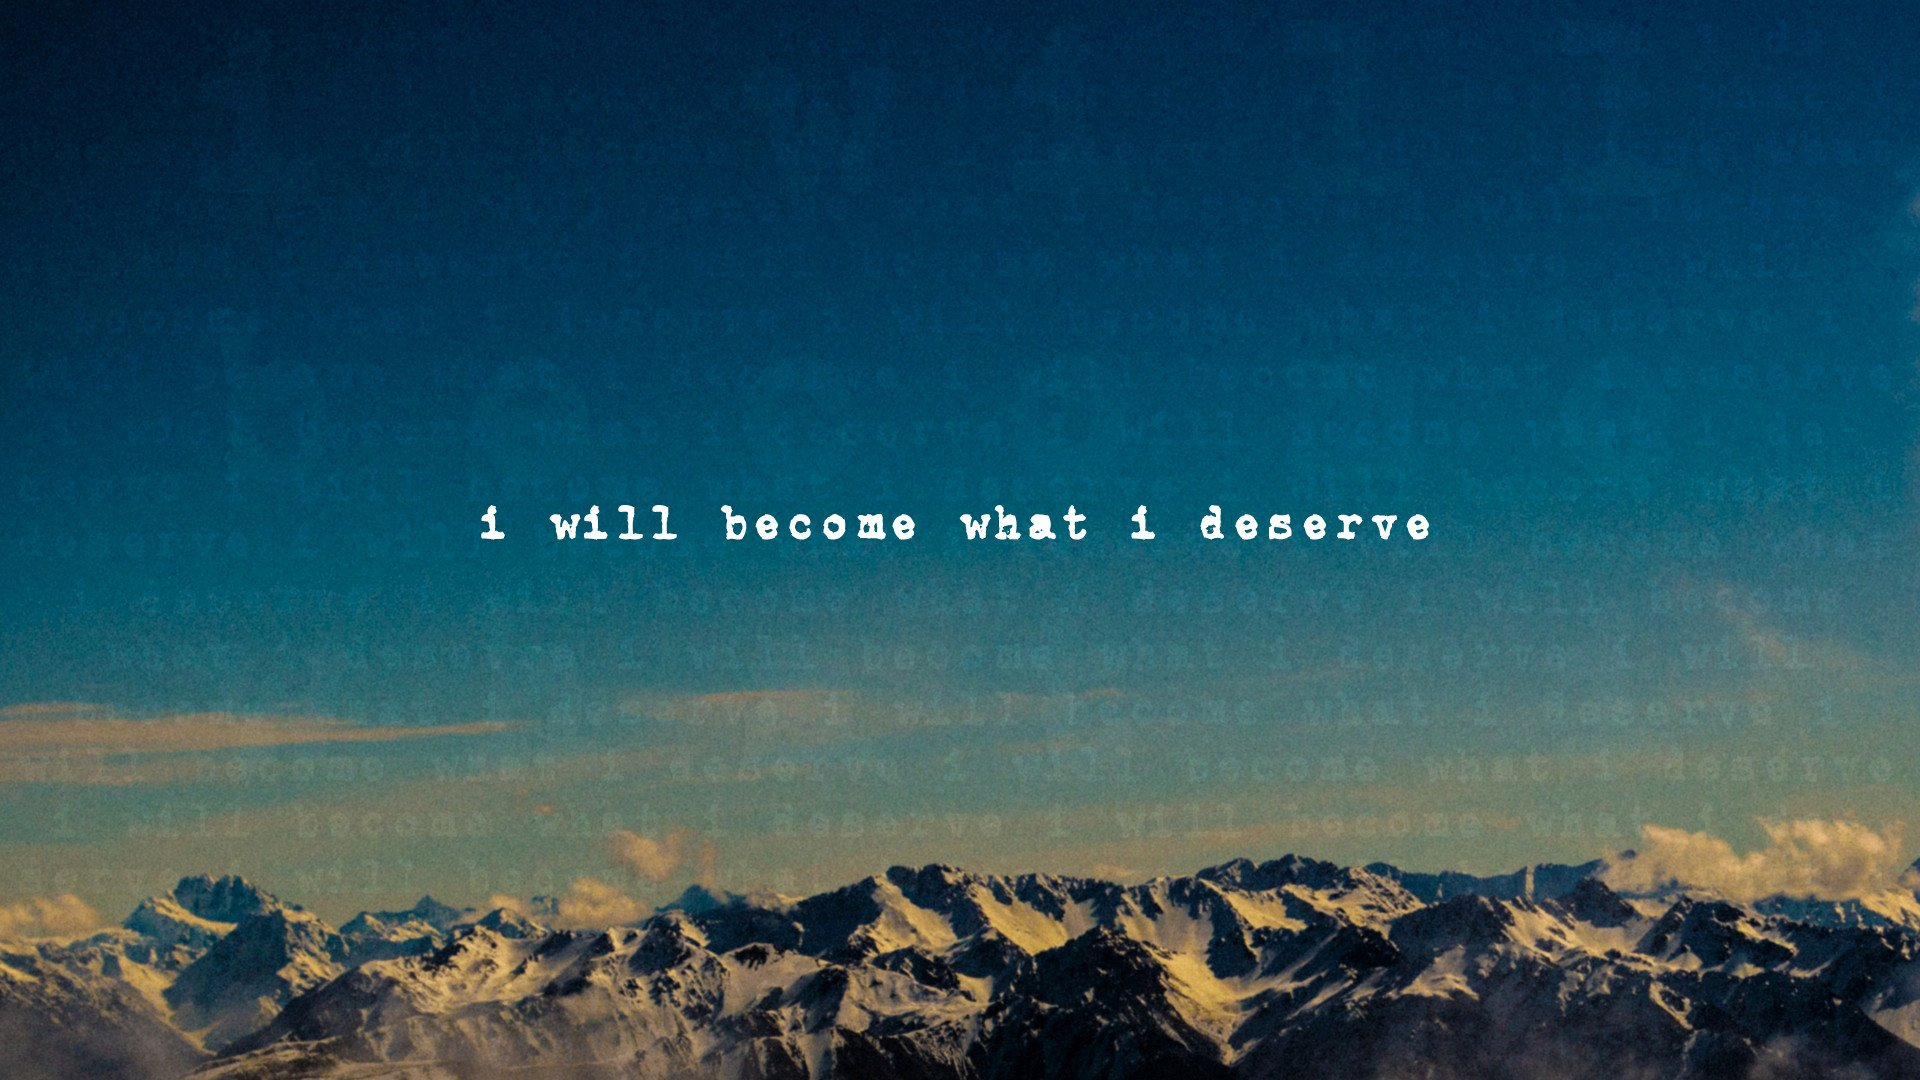 Cool Galaxy Wallpapers With Quotes Lyric On It About A Thousand Times Hd Wallpaper